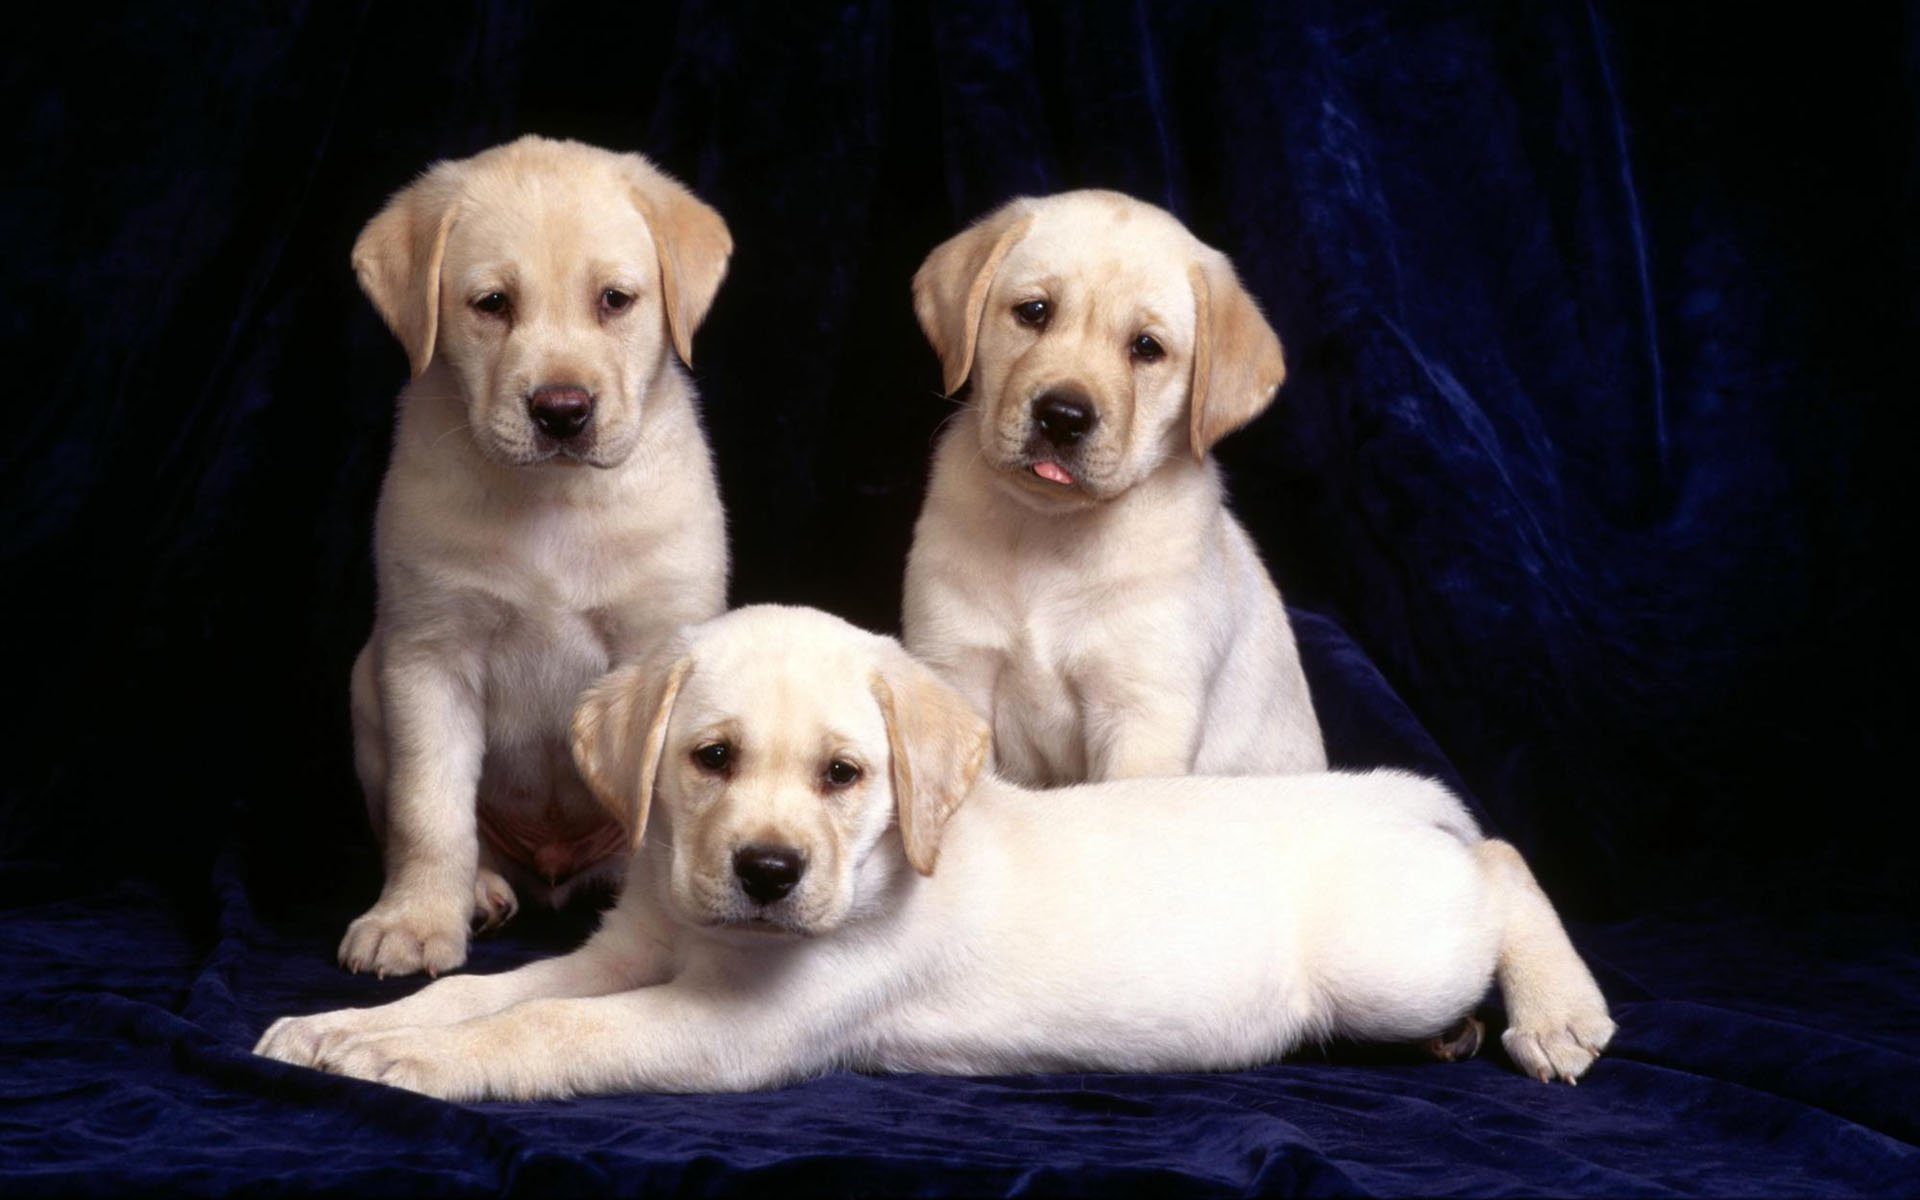 Puppies Yellow Desktop Background Original wallpapers HD   199103 1920x1200